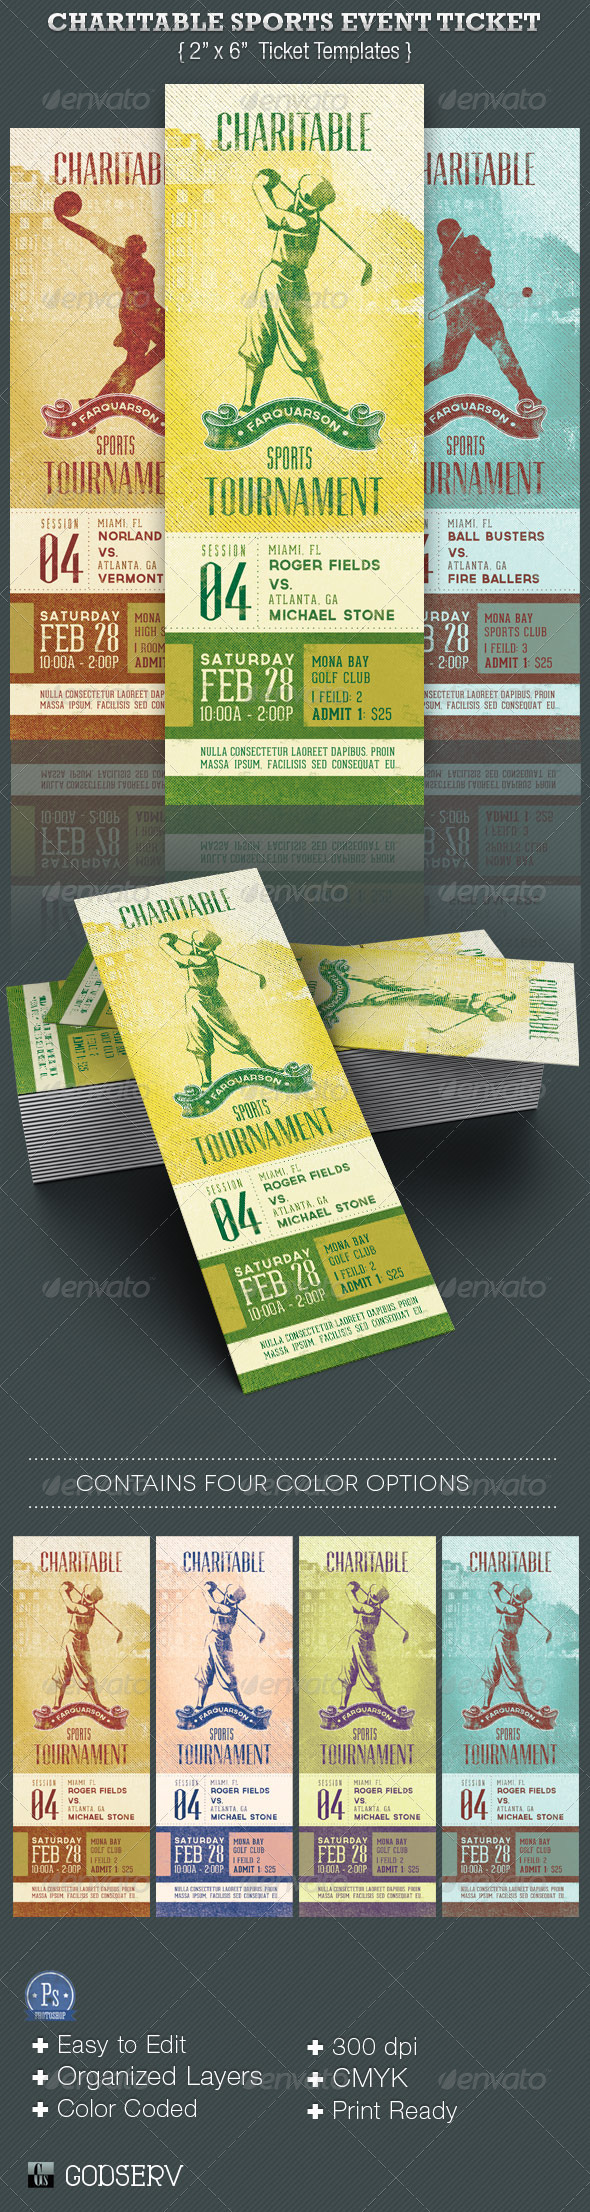 GraphicRiver Charitable Sports Event Ticket Template 3787532